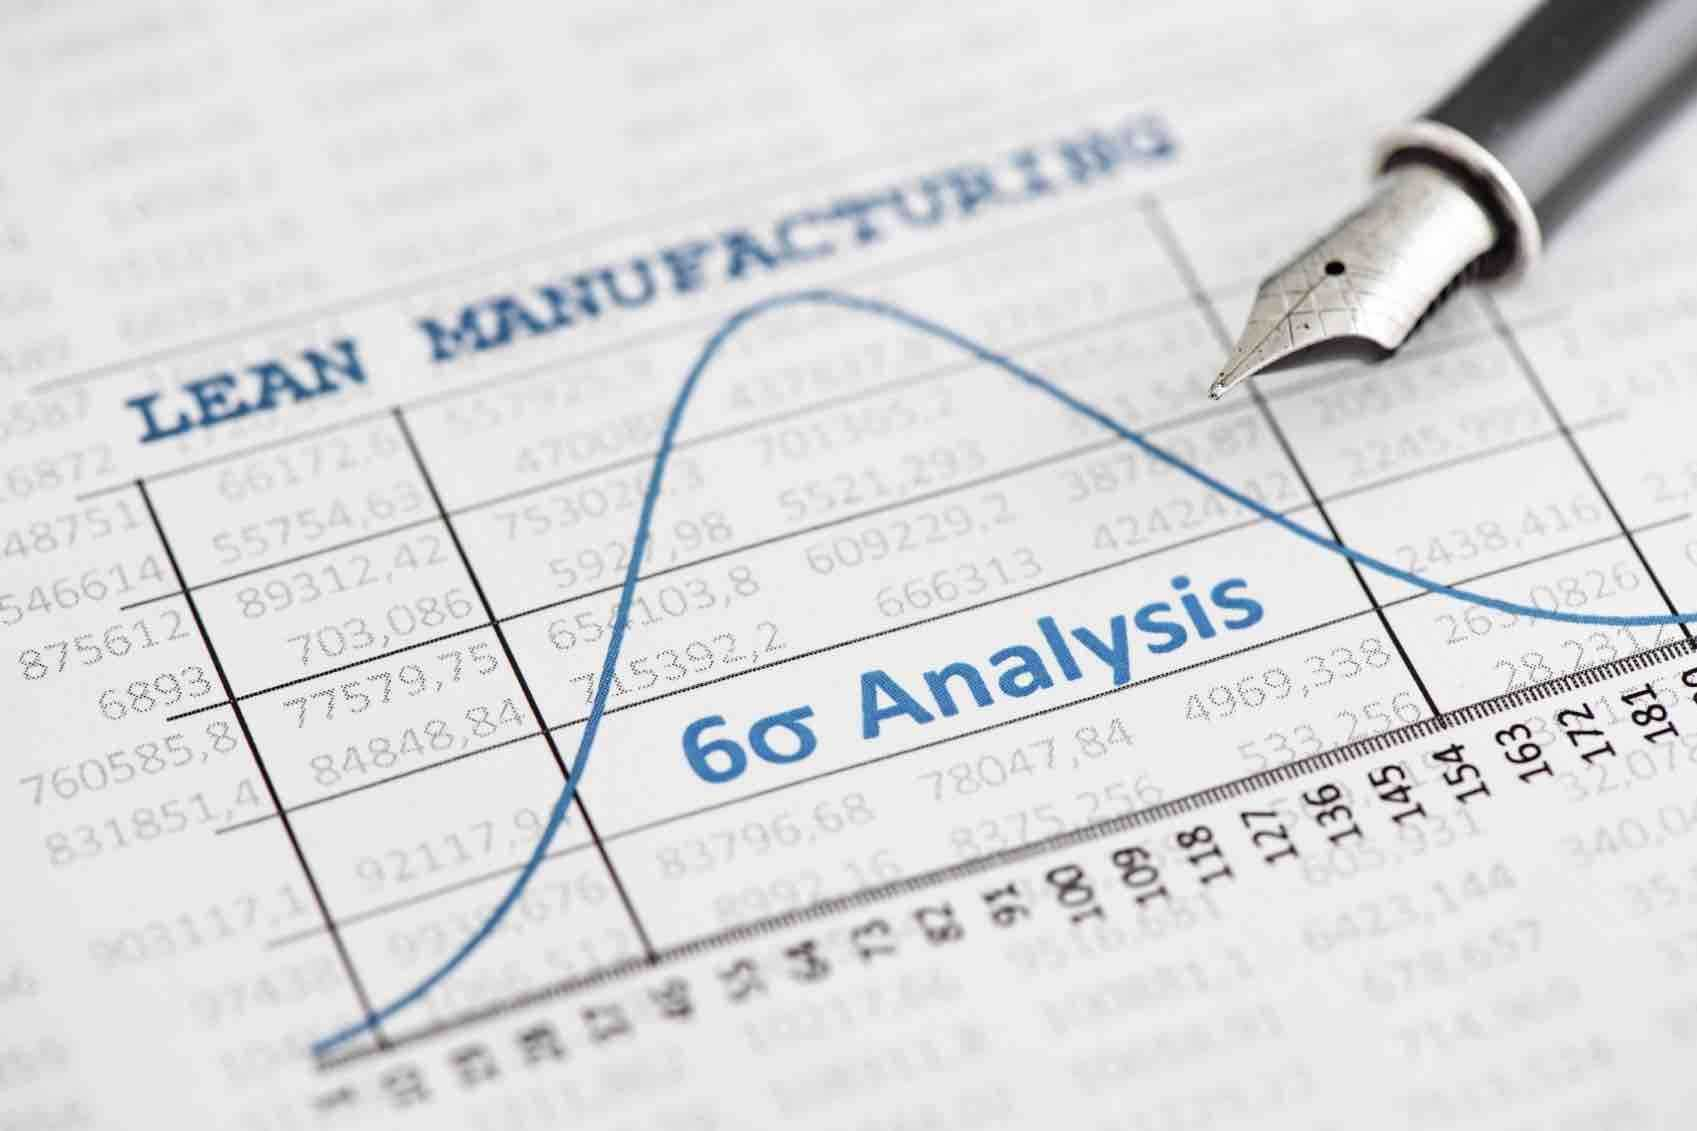 Six Sigma Analysis